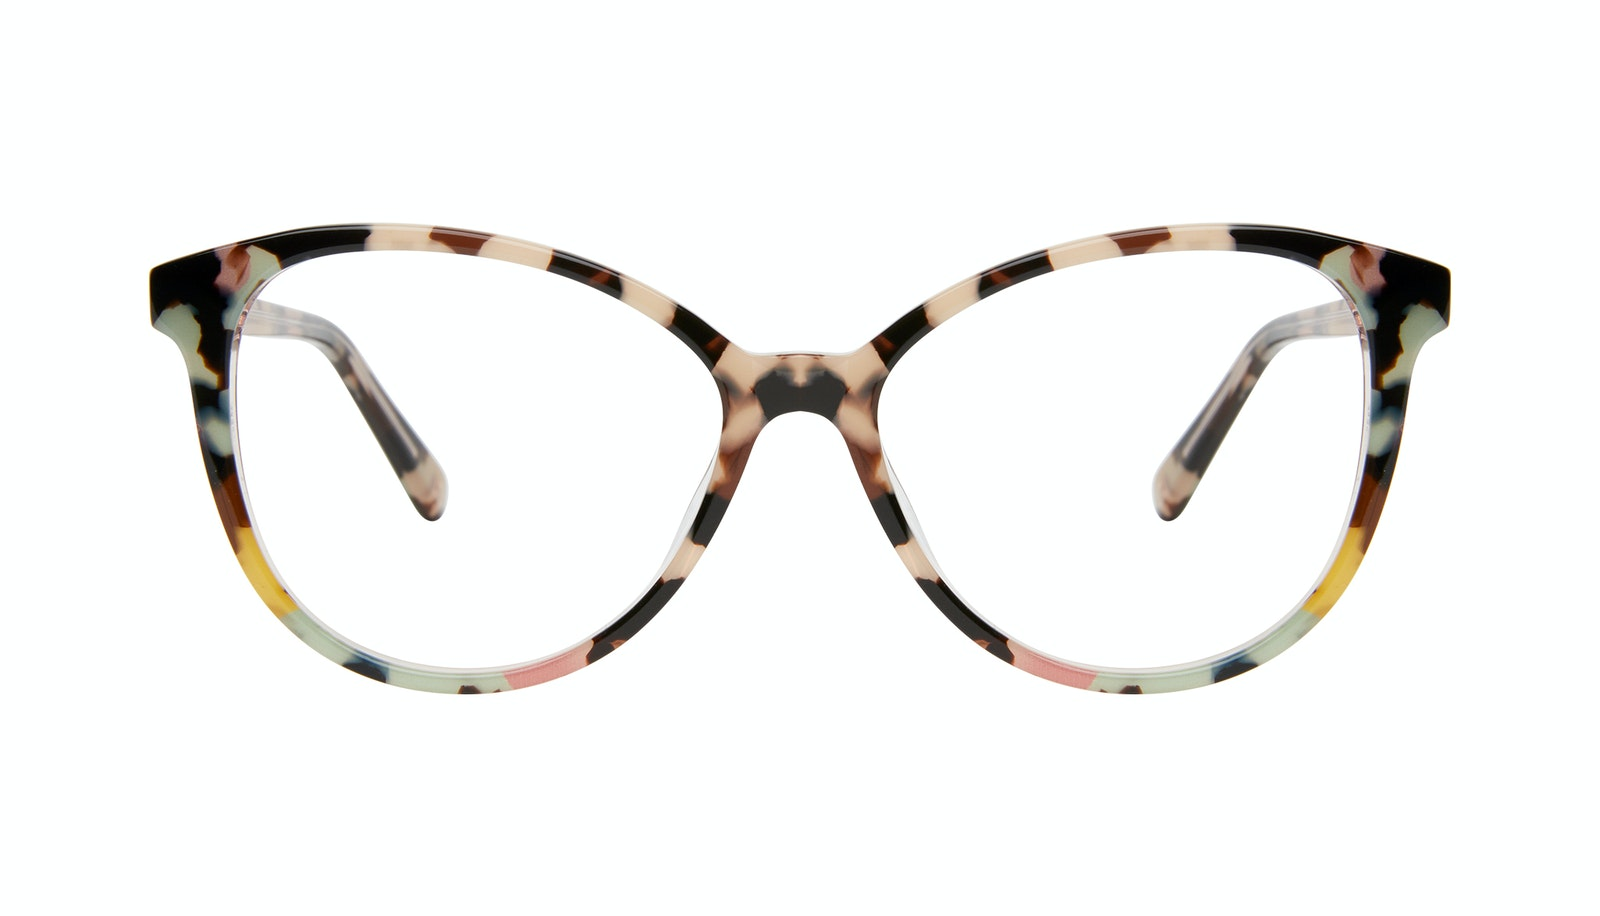 Affordable Fashion Glasses Cat Eye Eyeglasses Women Esprit L Pastel Tort